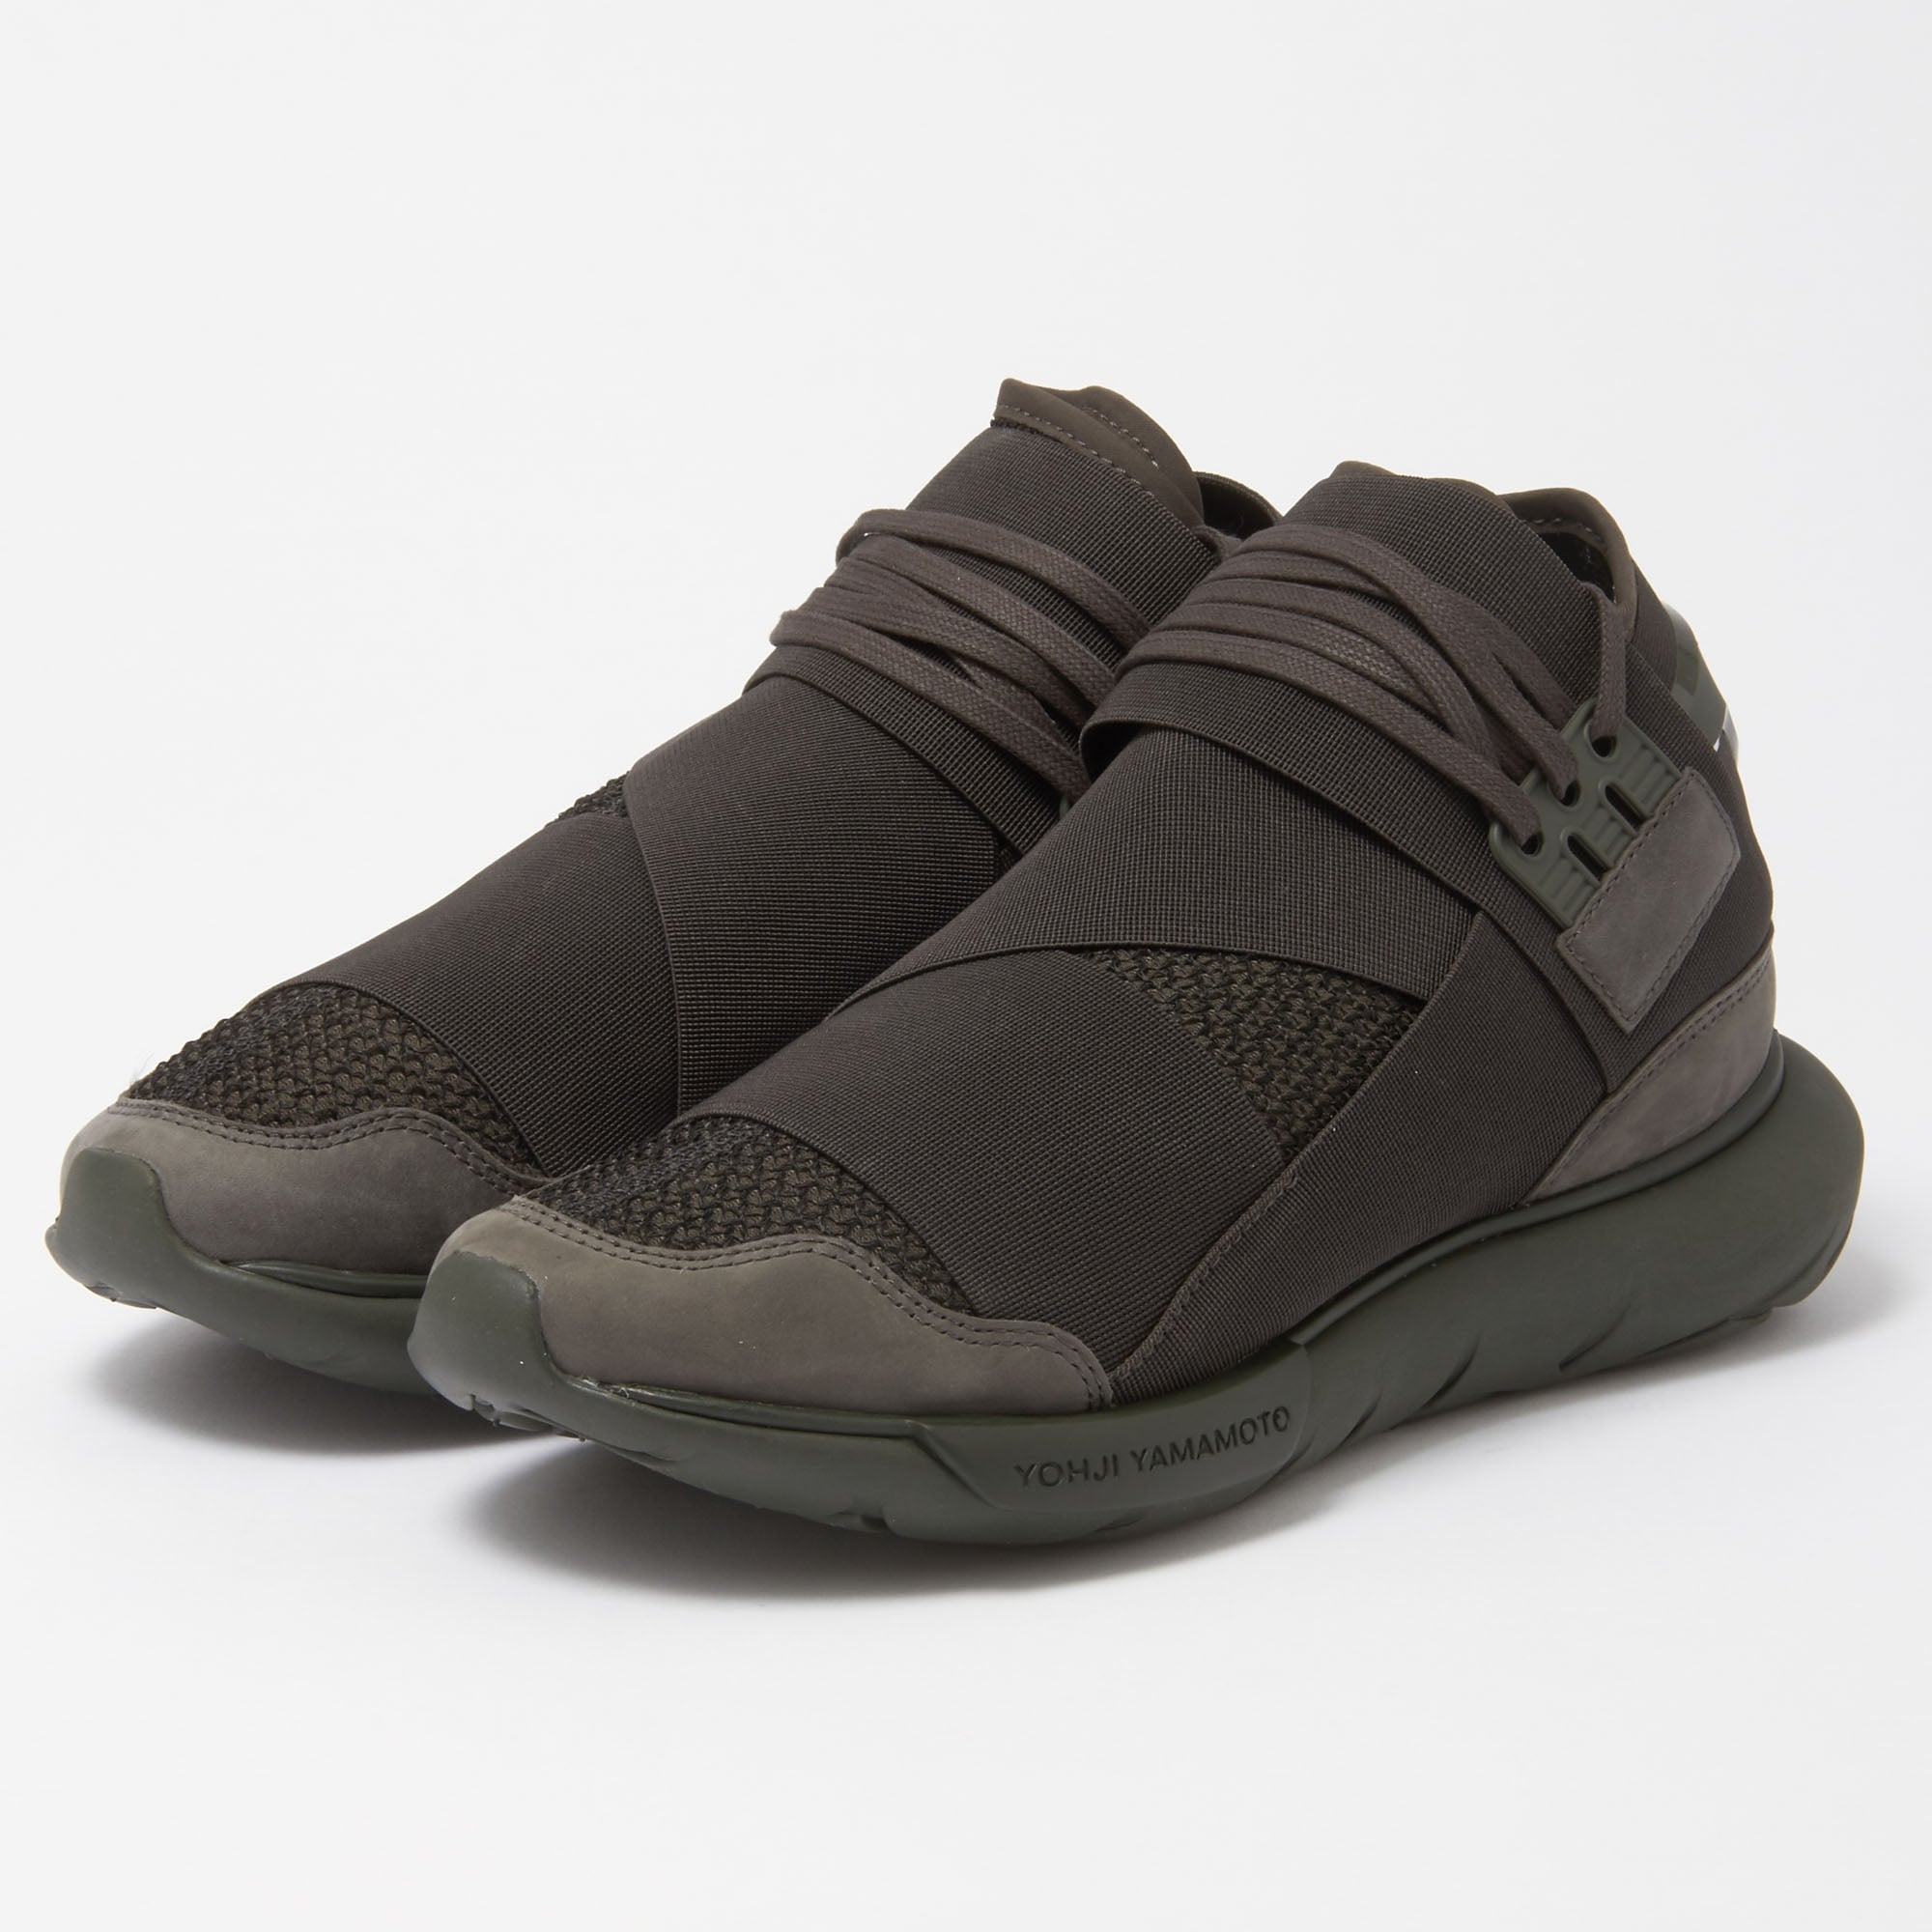 0cc4b403864 Adidas Y-3 Qasa High (Black Olive) Sneakers